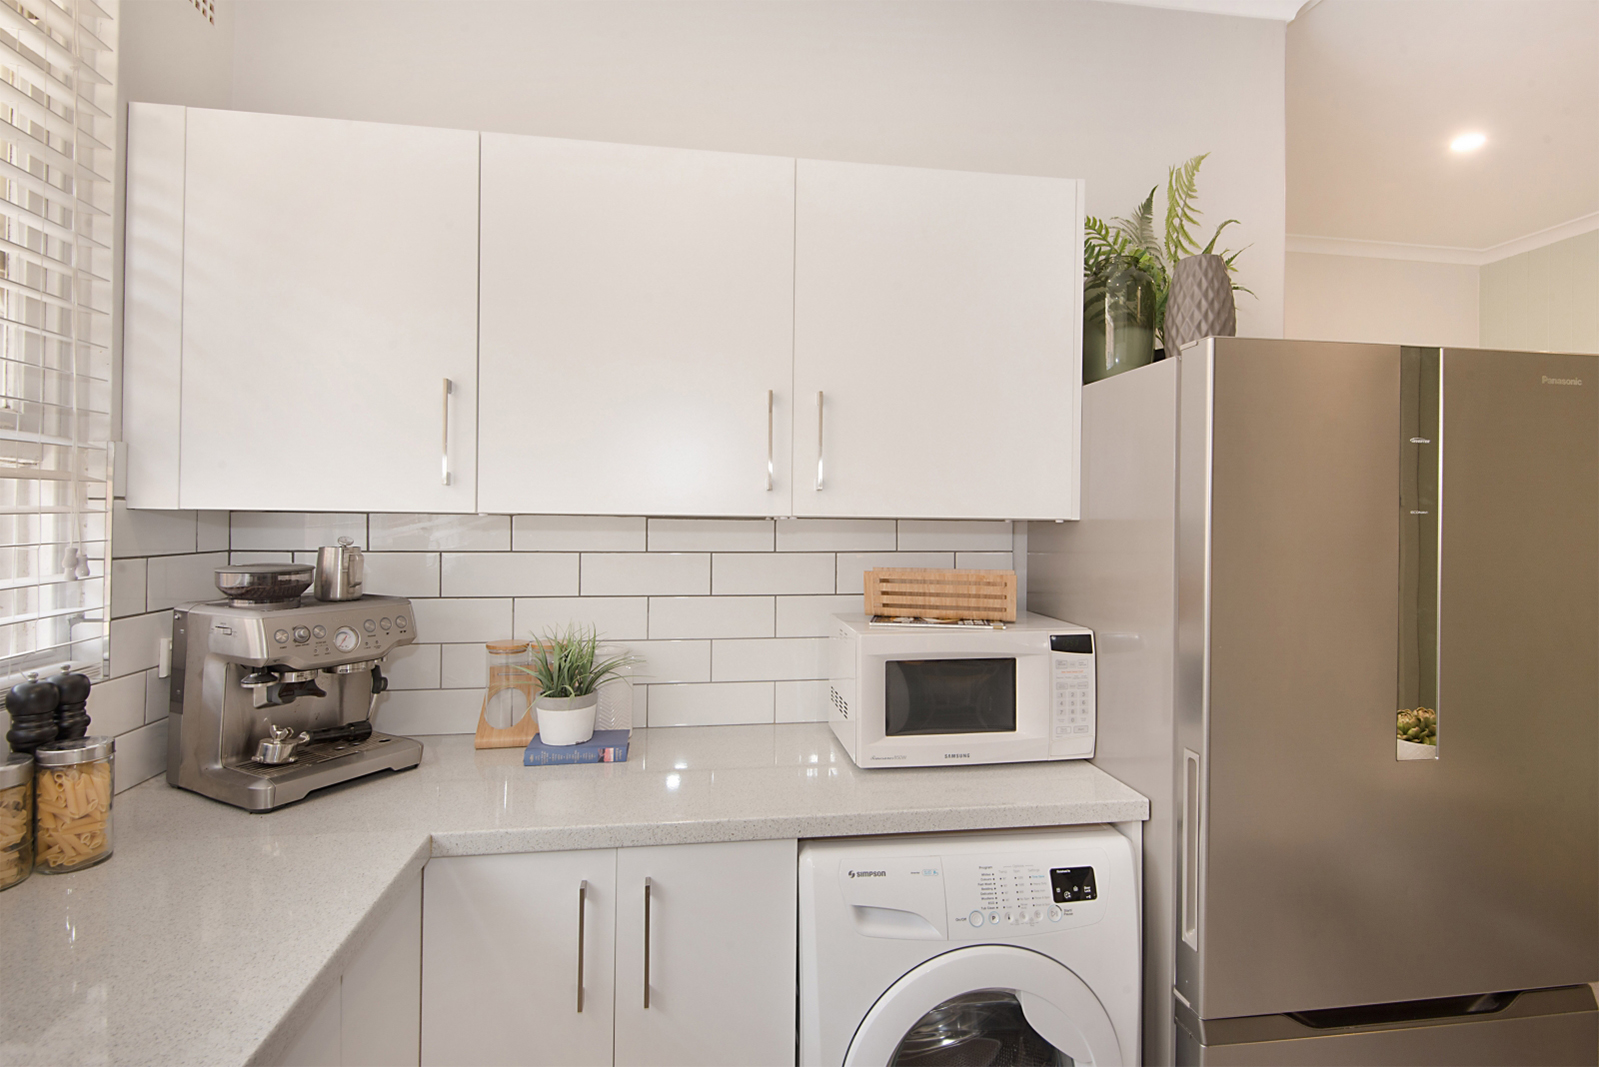 Cherie-Barber-kitchen-image-solo-1-for-Mortdale-Apartment-blog